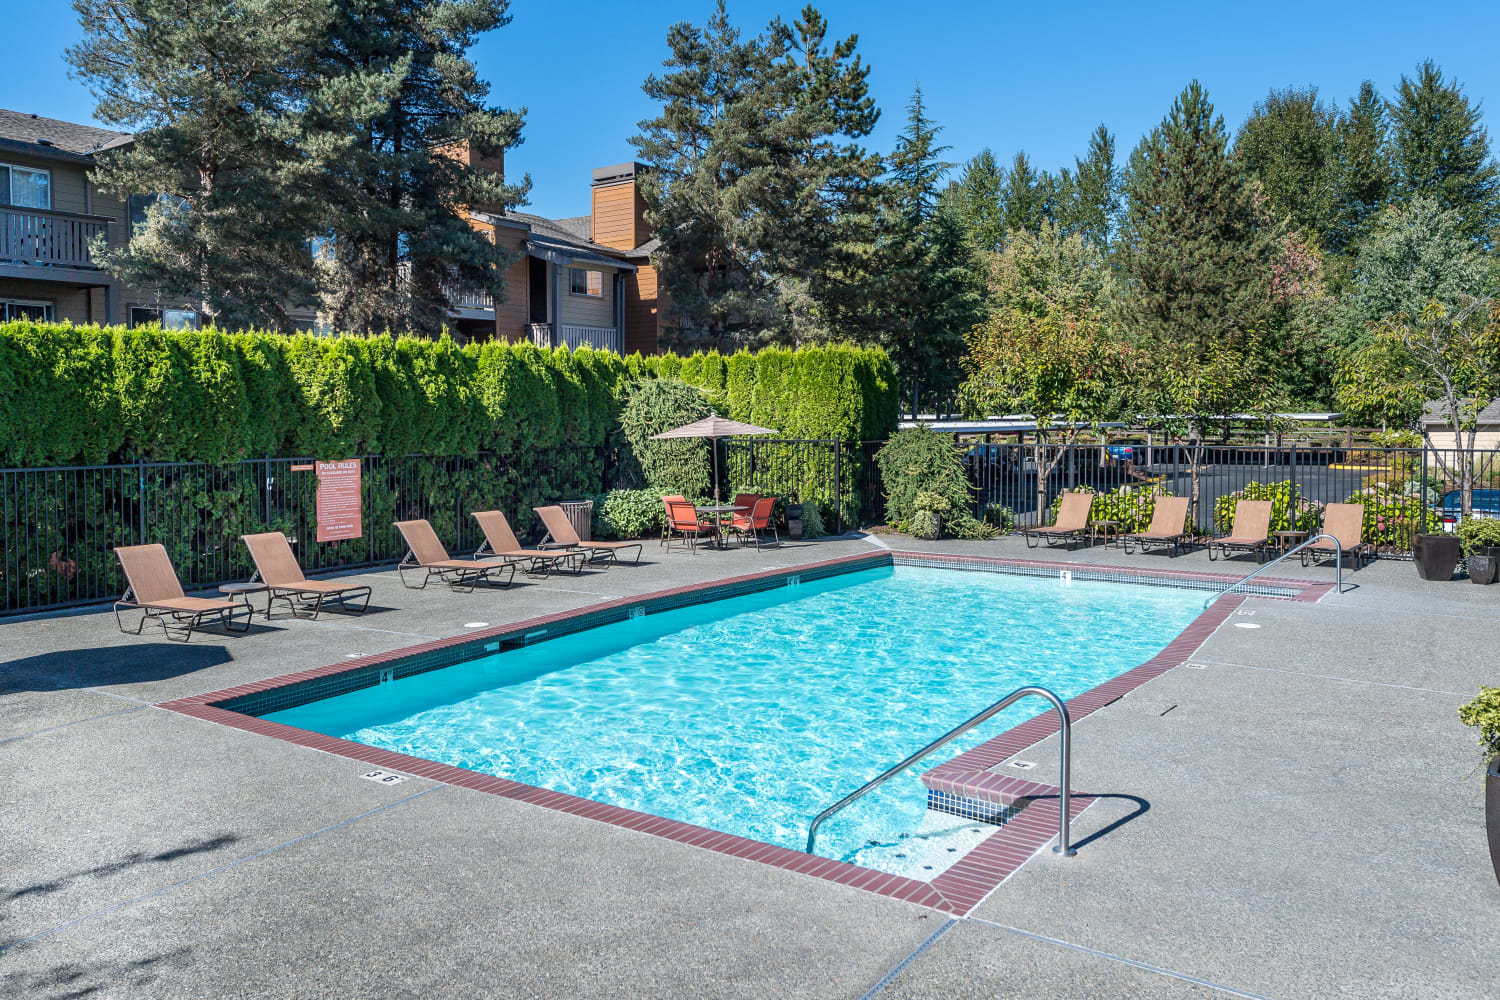 Enjoy a swimming pool at Campbell Run Apartments in Woodinville, Washington